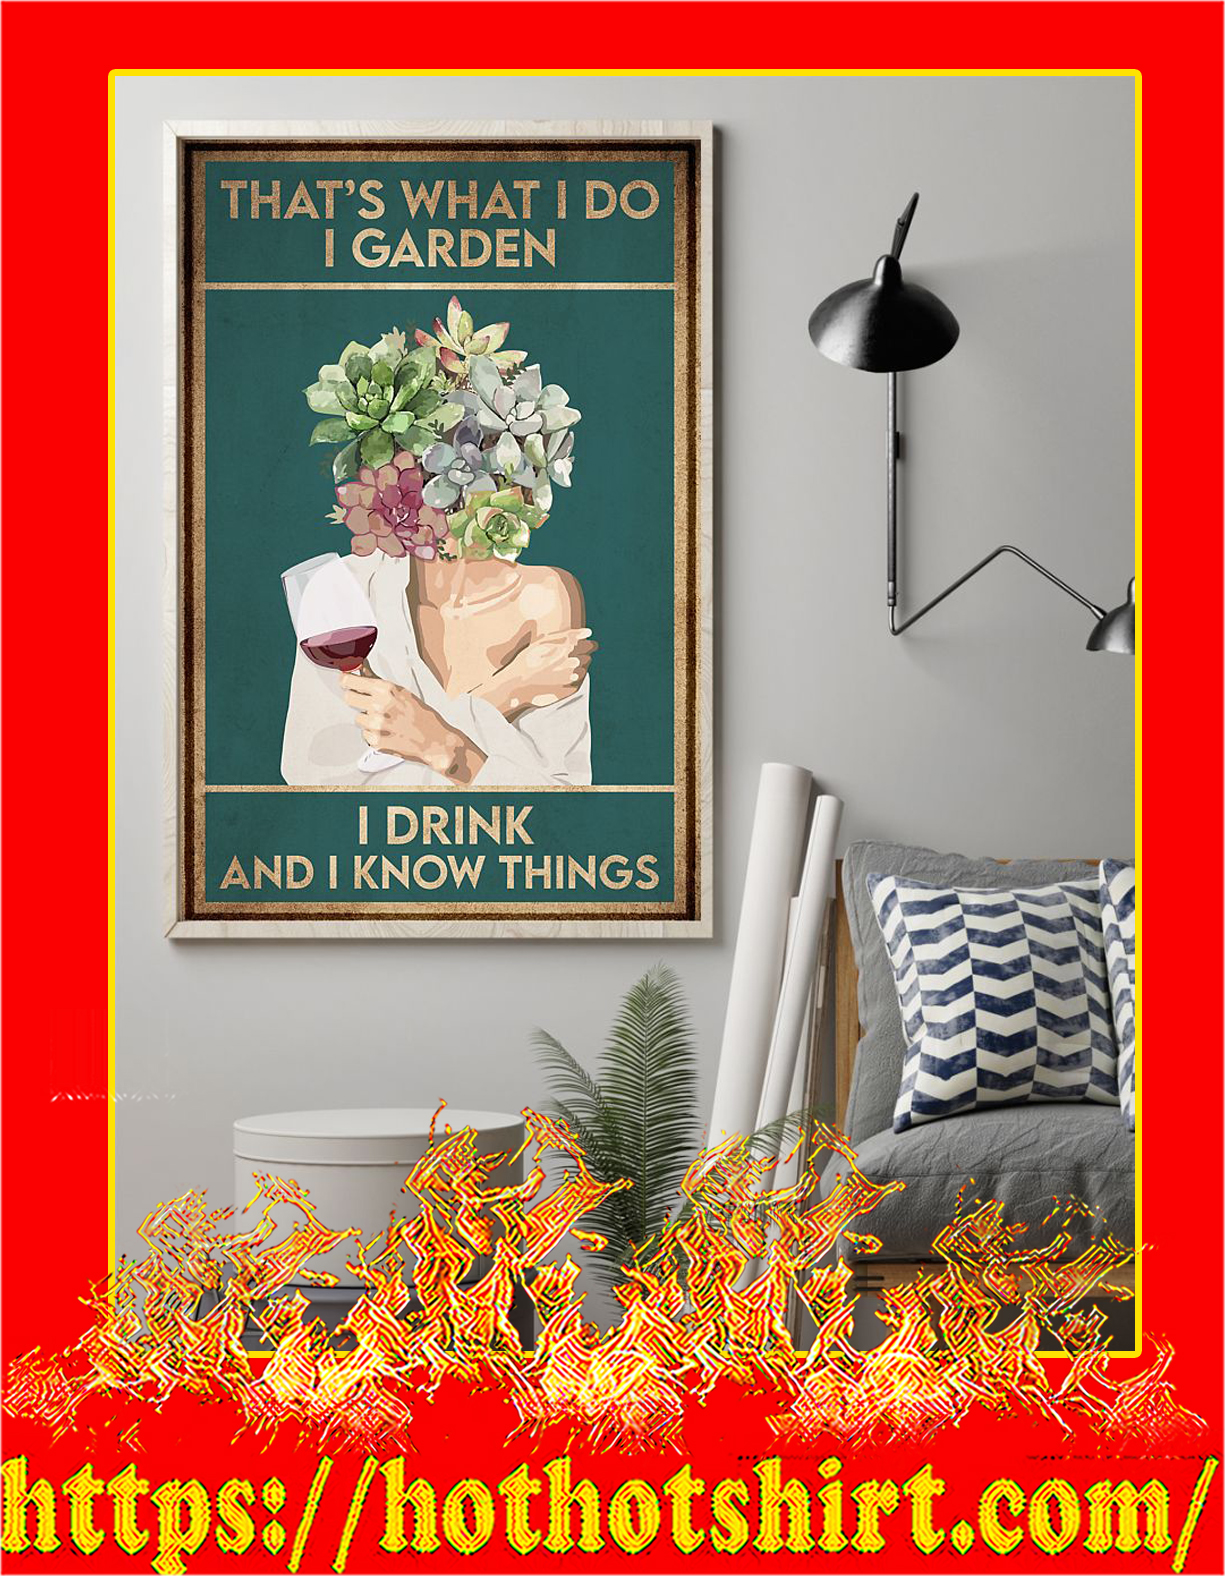 Wine that's what i do i garden i drink and i know things poster - Pic 1